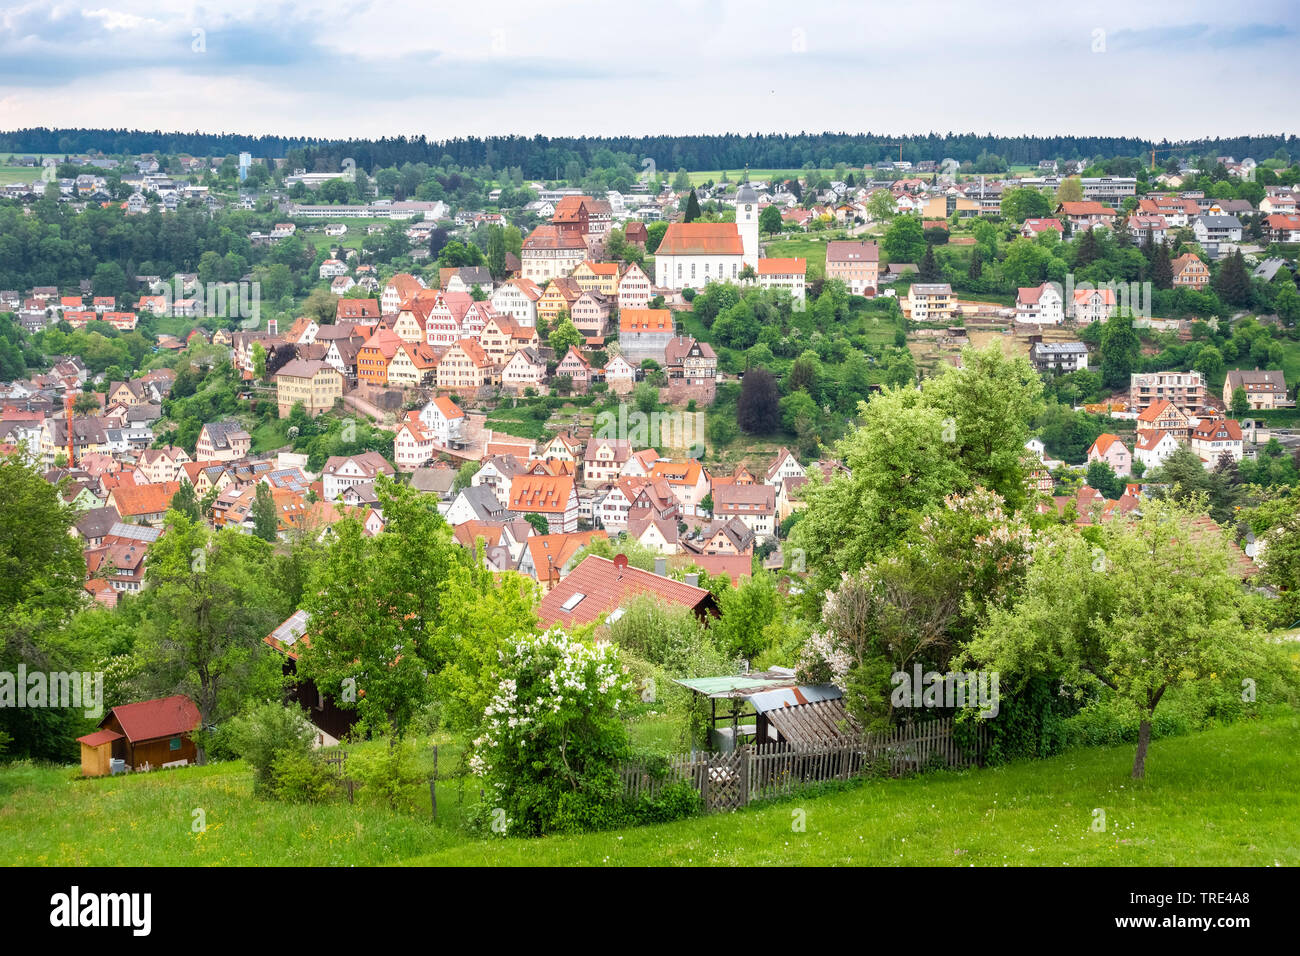 View of the histrorical town of Altensteig in the Black Forrest, Germany, Germany, Baden-Wuerttemberg, Black Forest, Altensteig Stock Photo